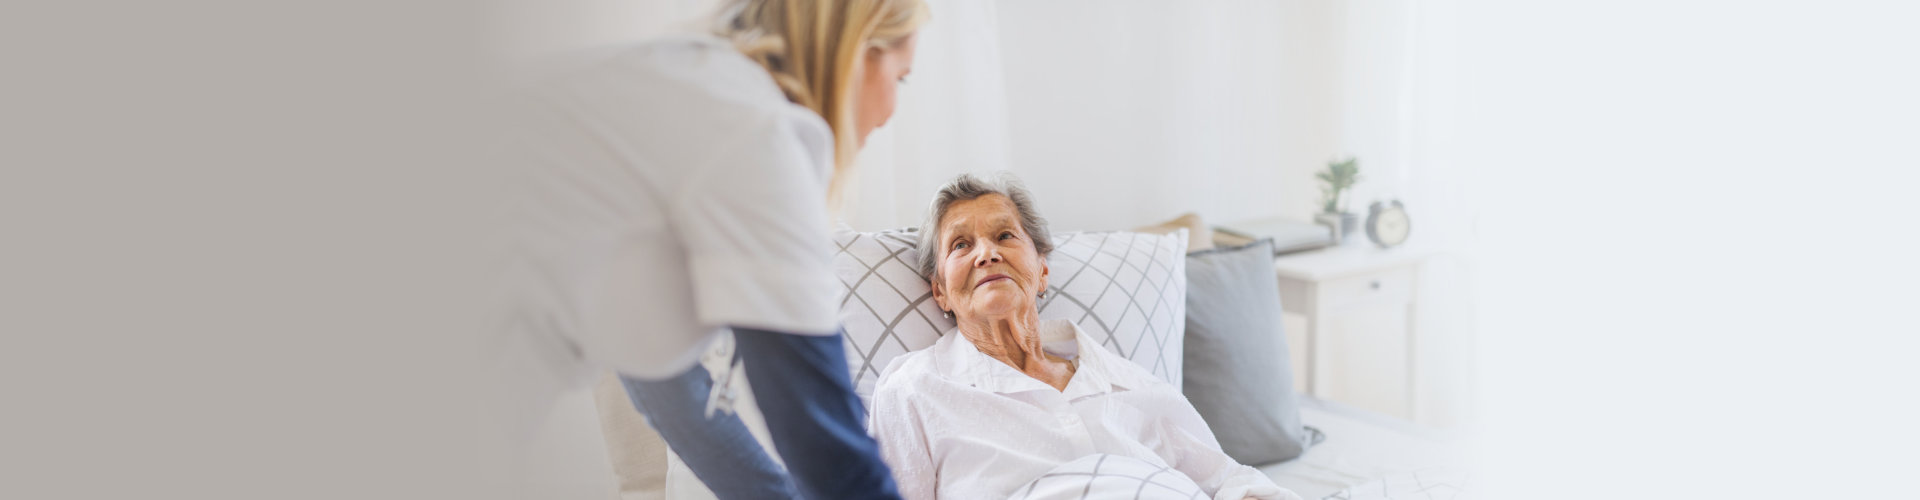 caregiver putting senior woman in bed